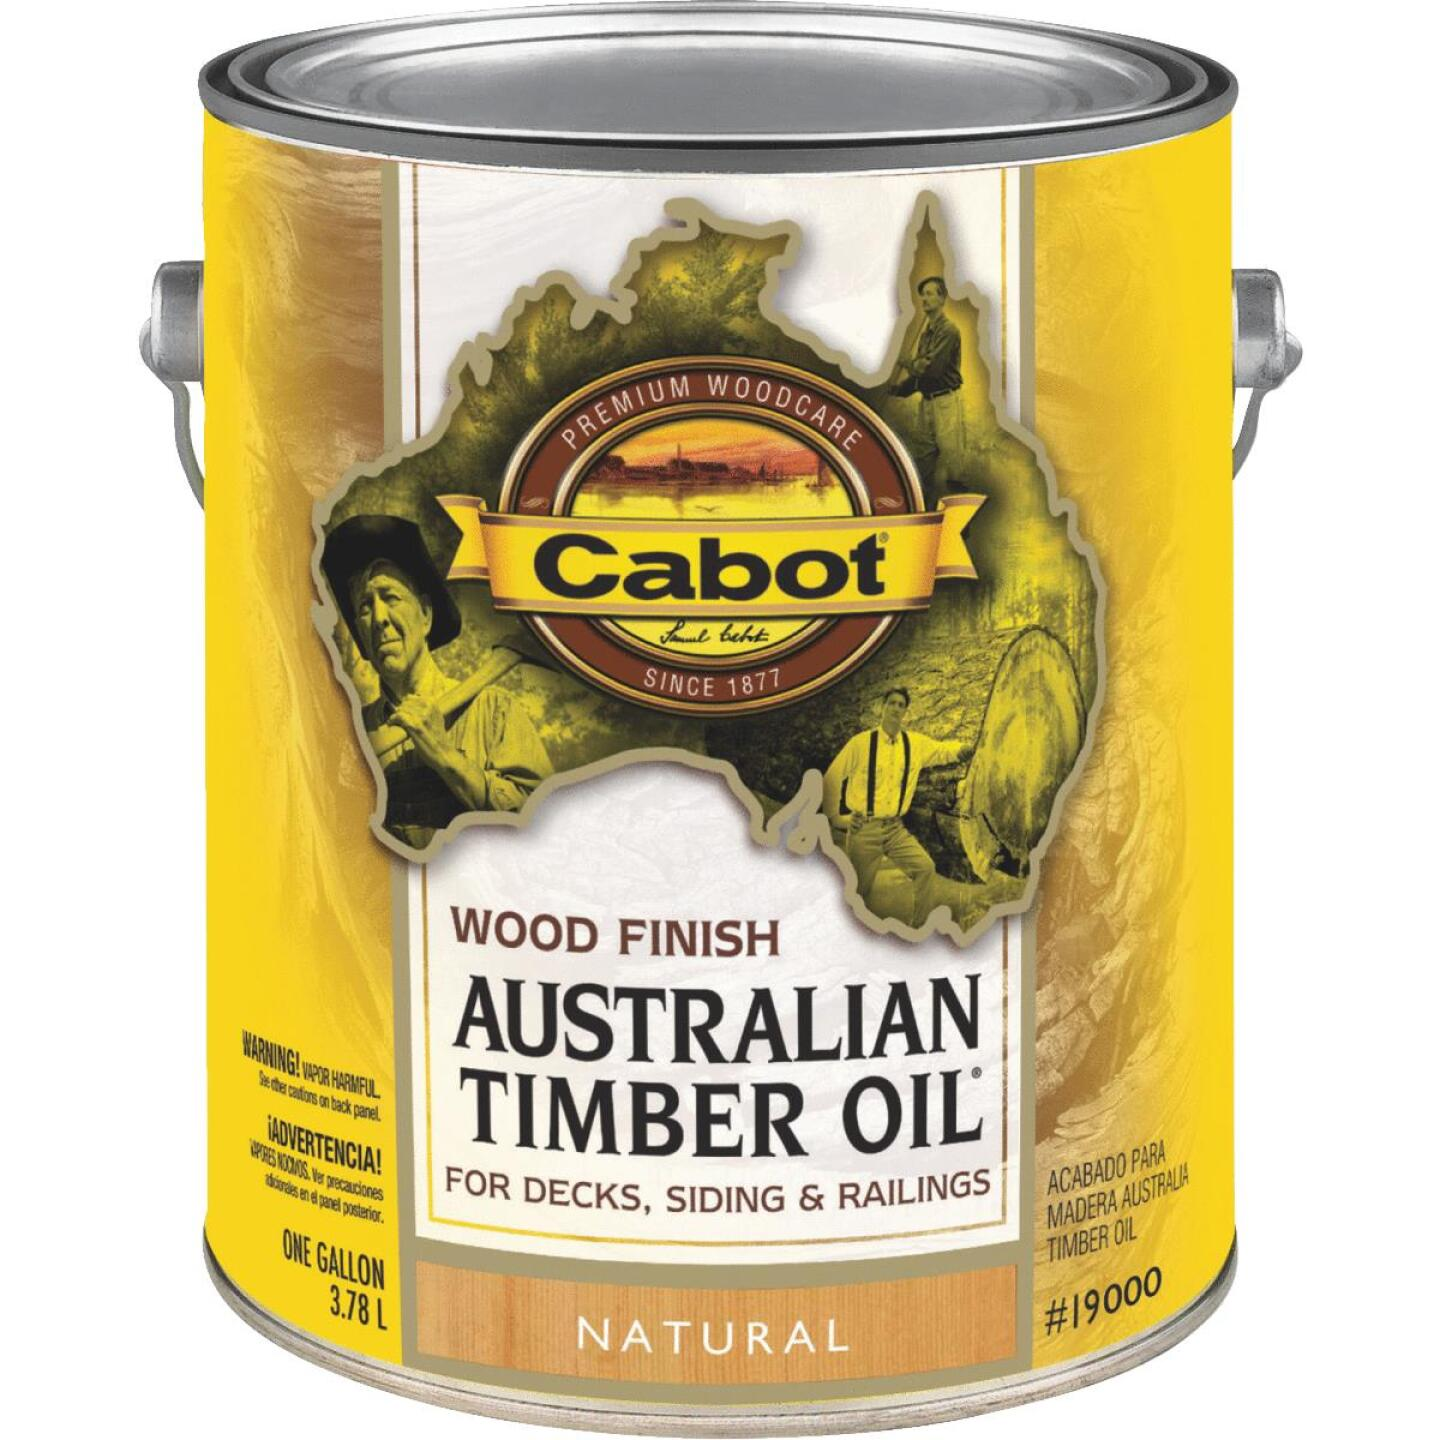 Cabot Australian Timber Oil Water Reducible Translucent Exterior Oil Finish, Natural, 1 Gal. Image 1